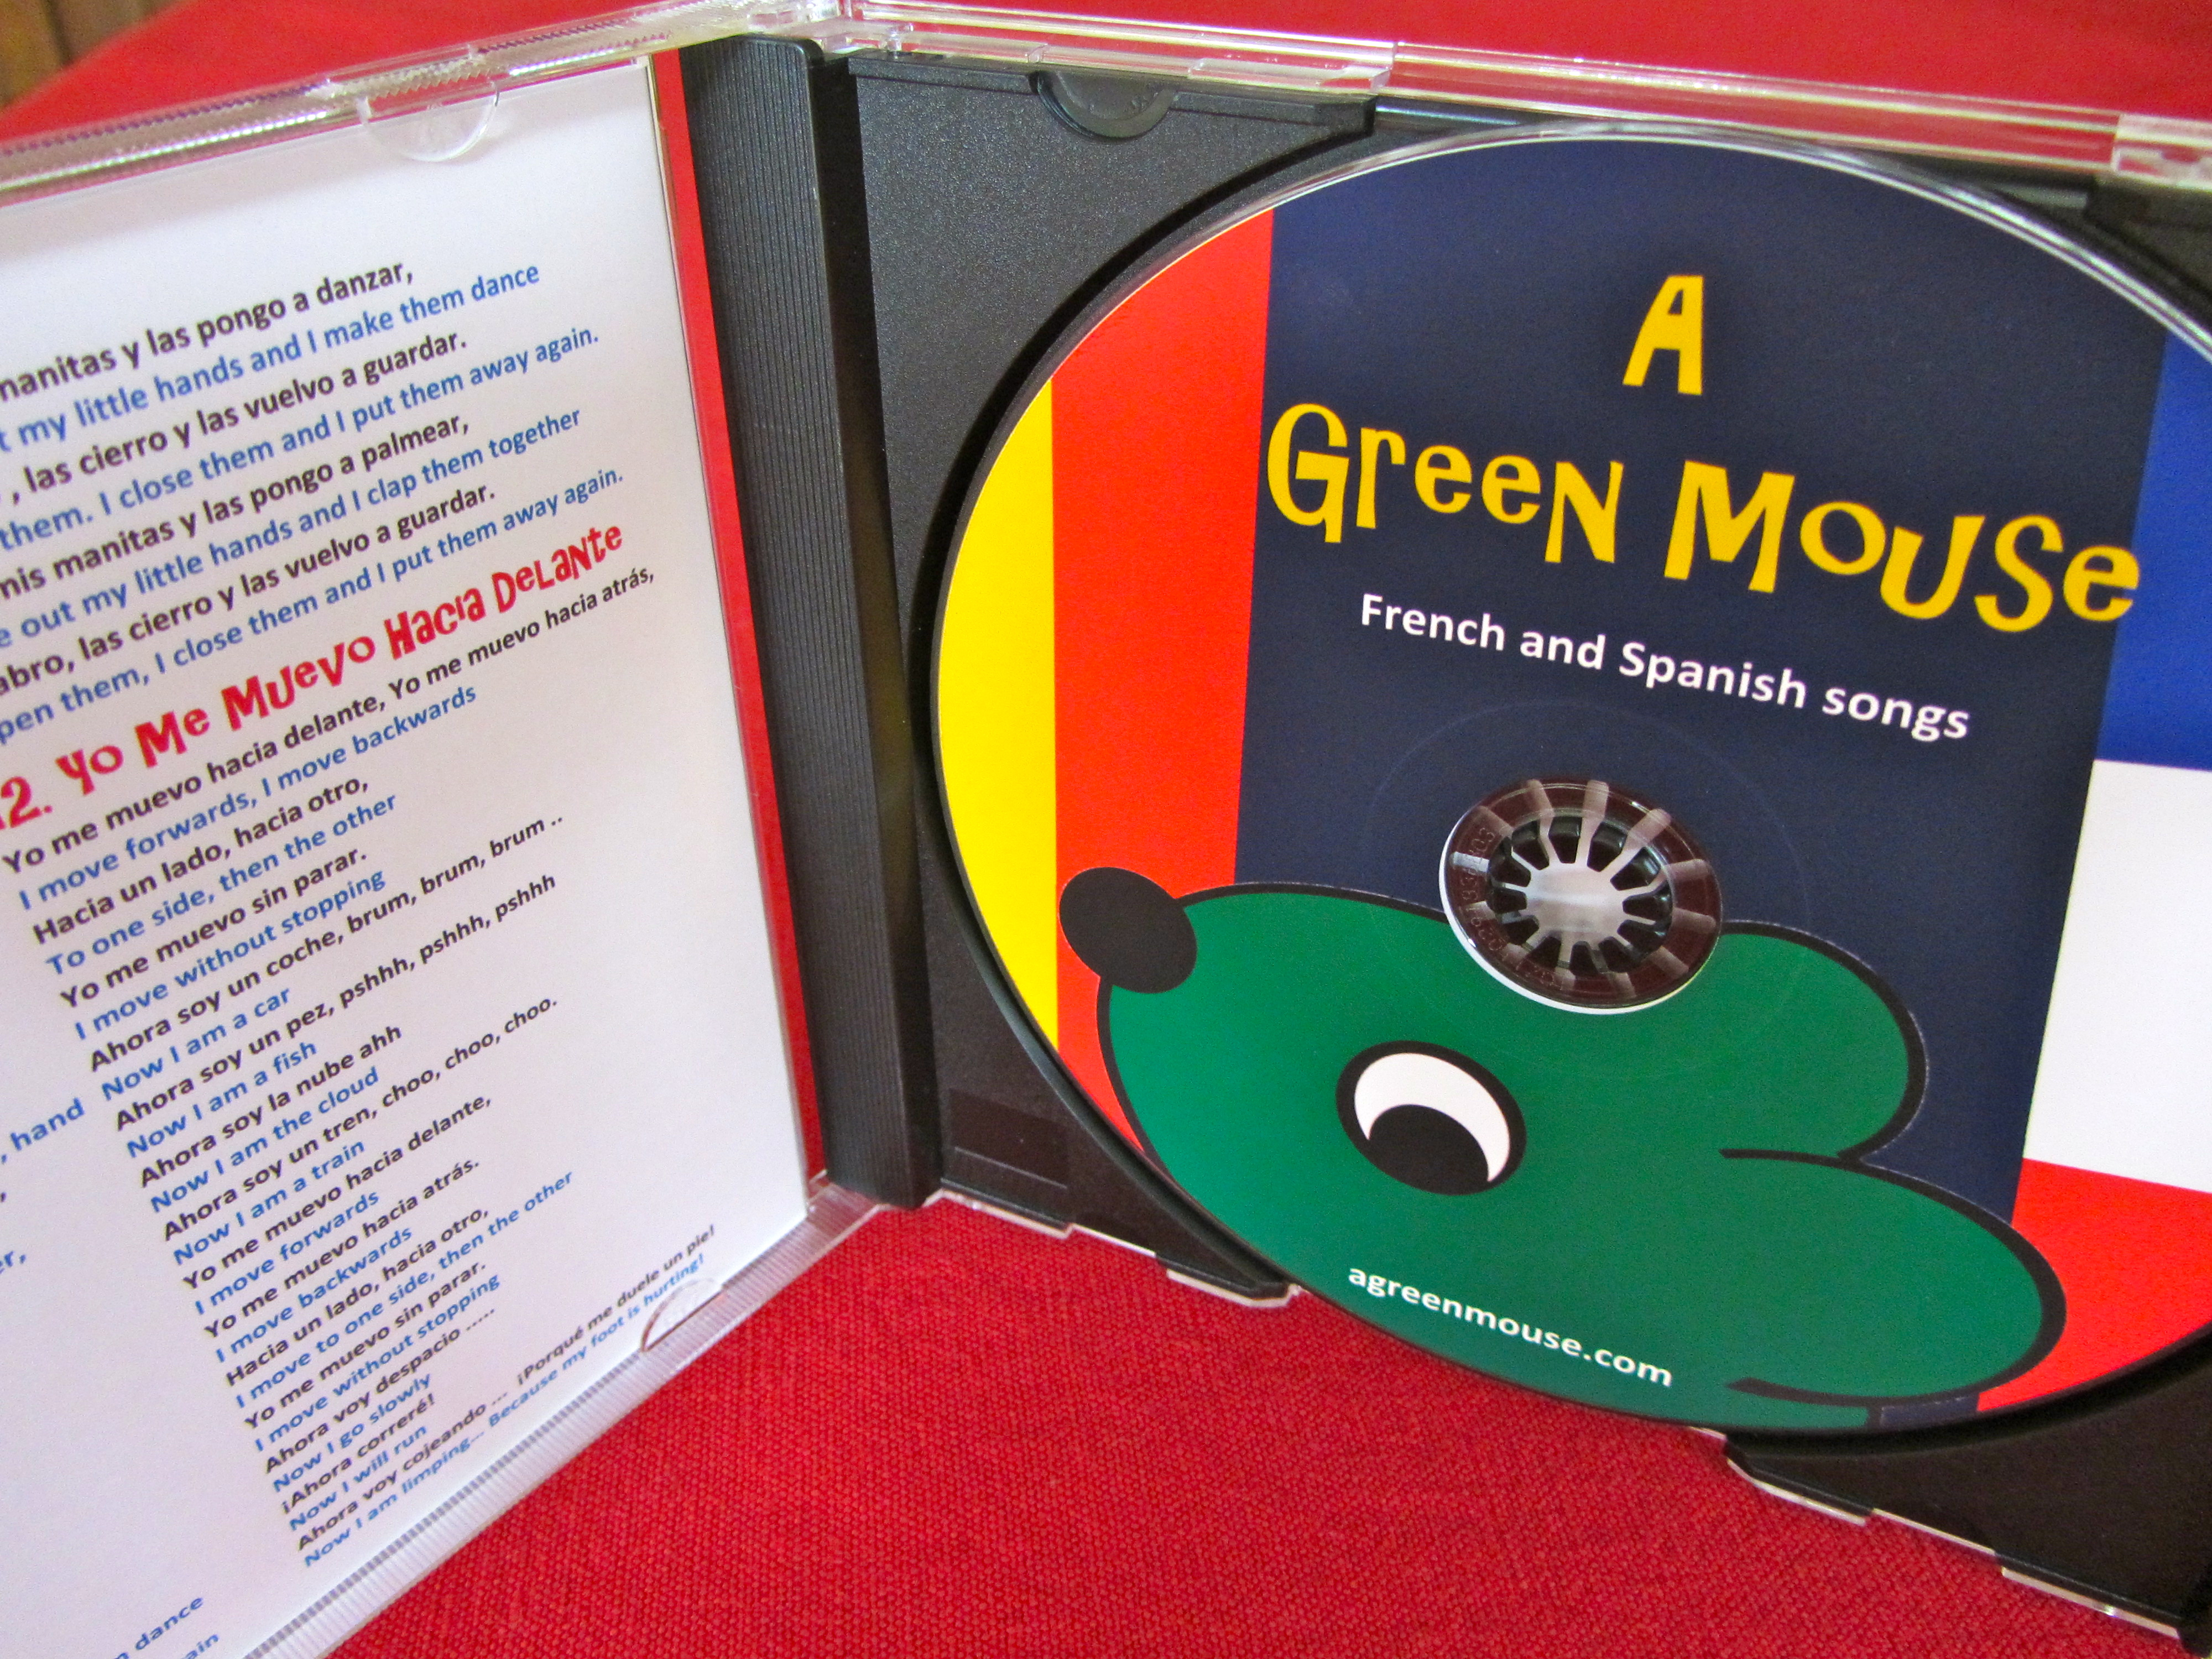 image for A Green Mouse French and Spanish songs for kids